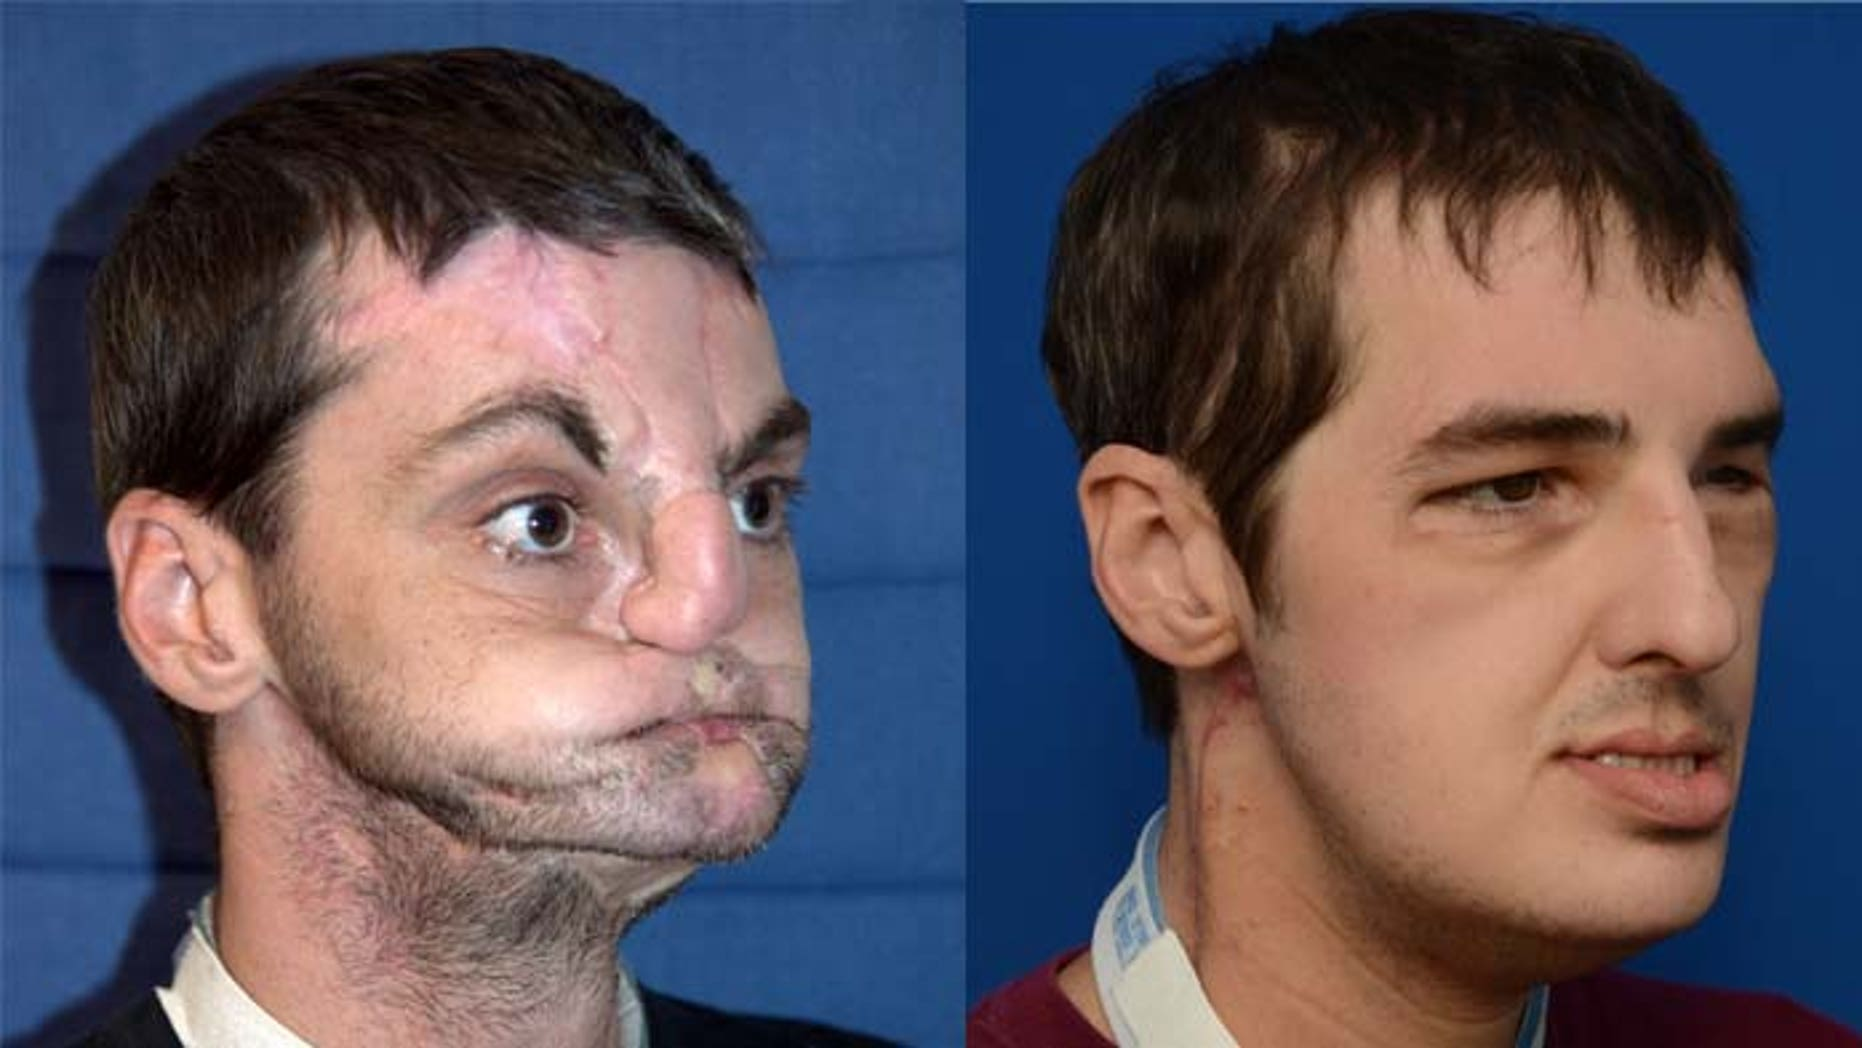 Richard Norris after a gun accident and seven months after receiving a full face transplant.